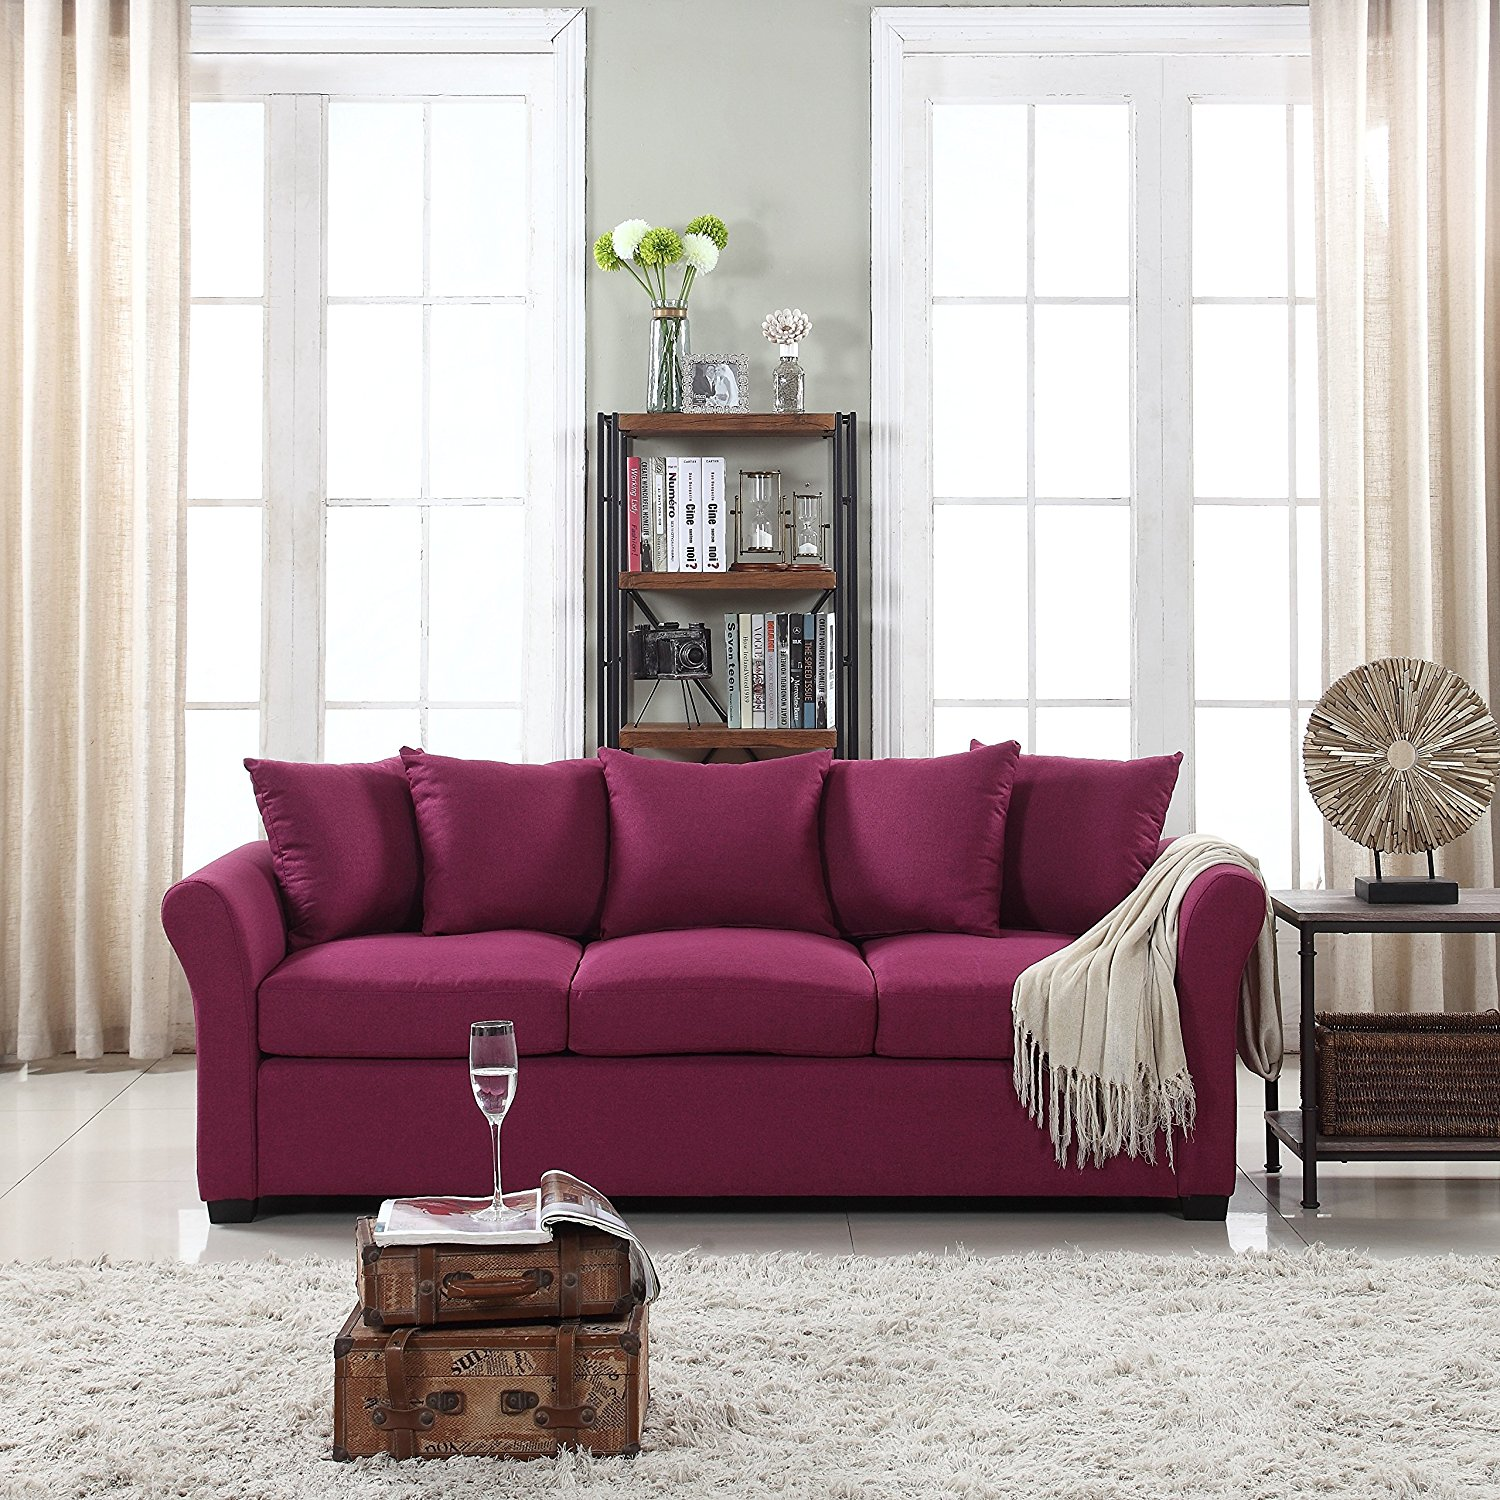 taylor king sofas sofabord design selv classic and traditional ultra comfortable linen fabric ...